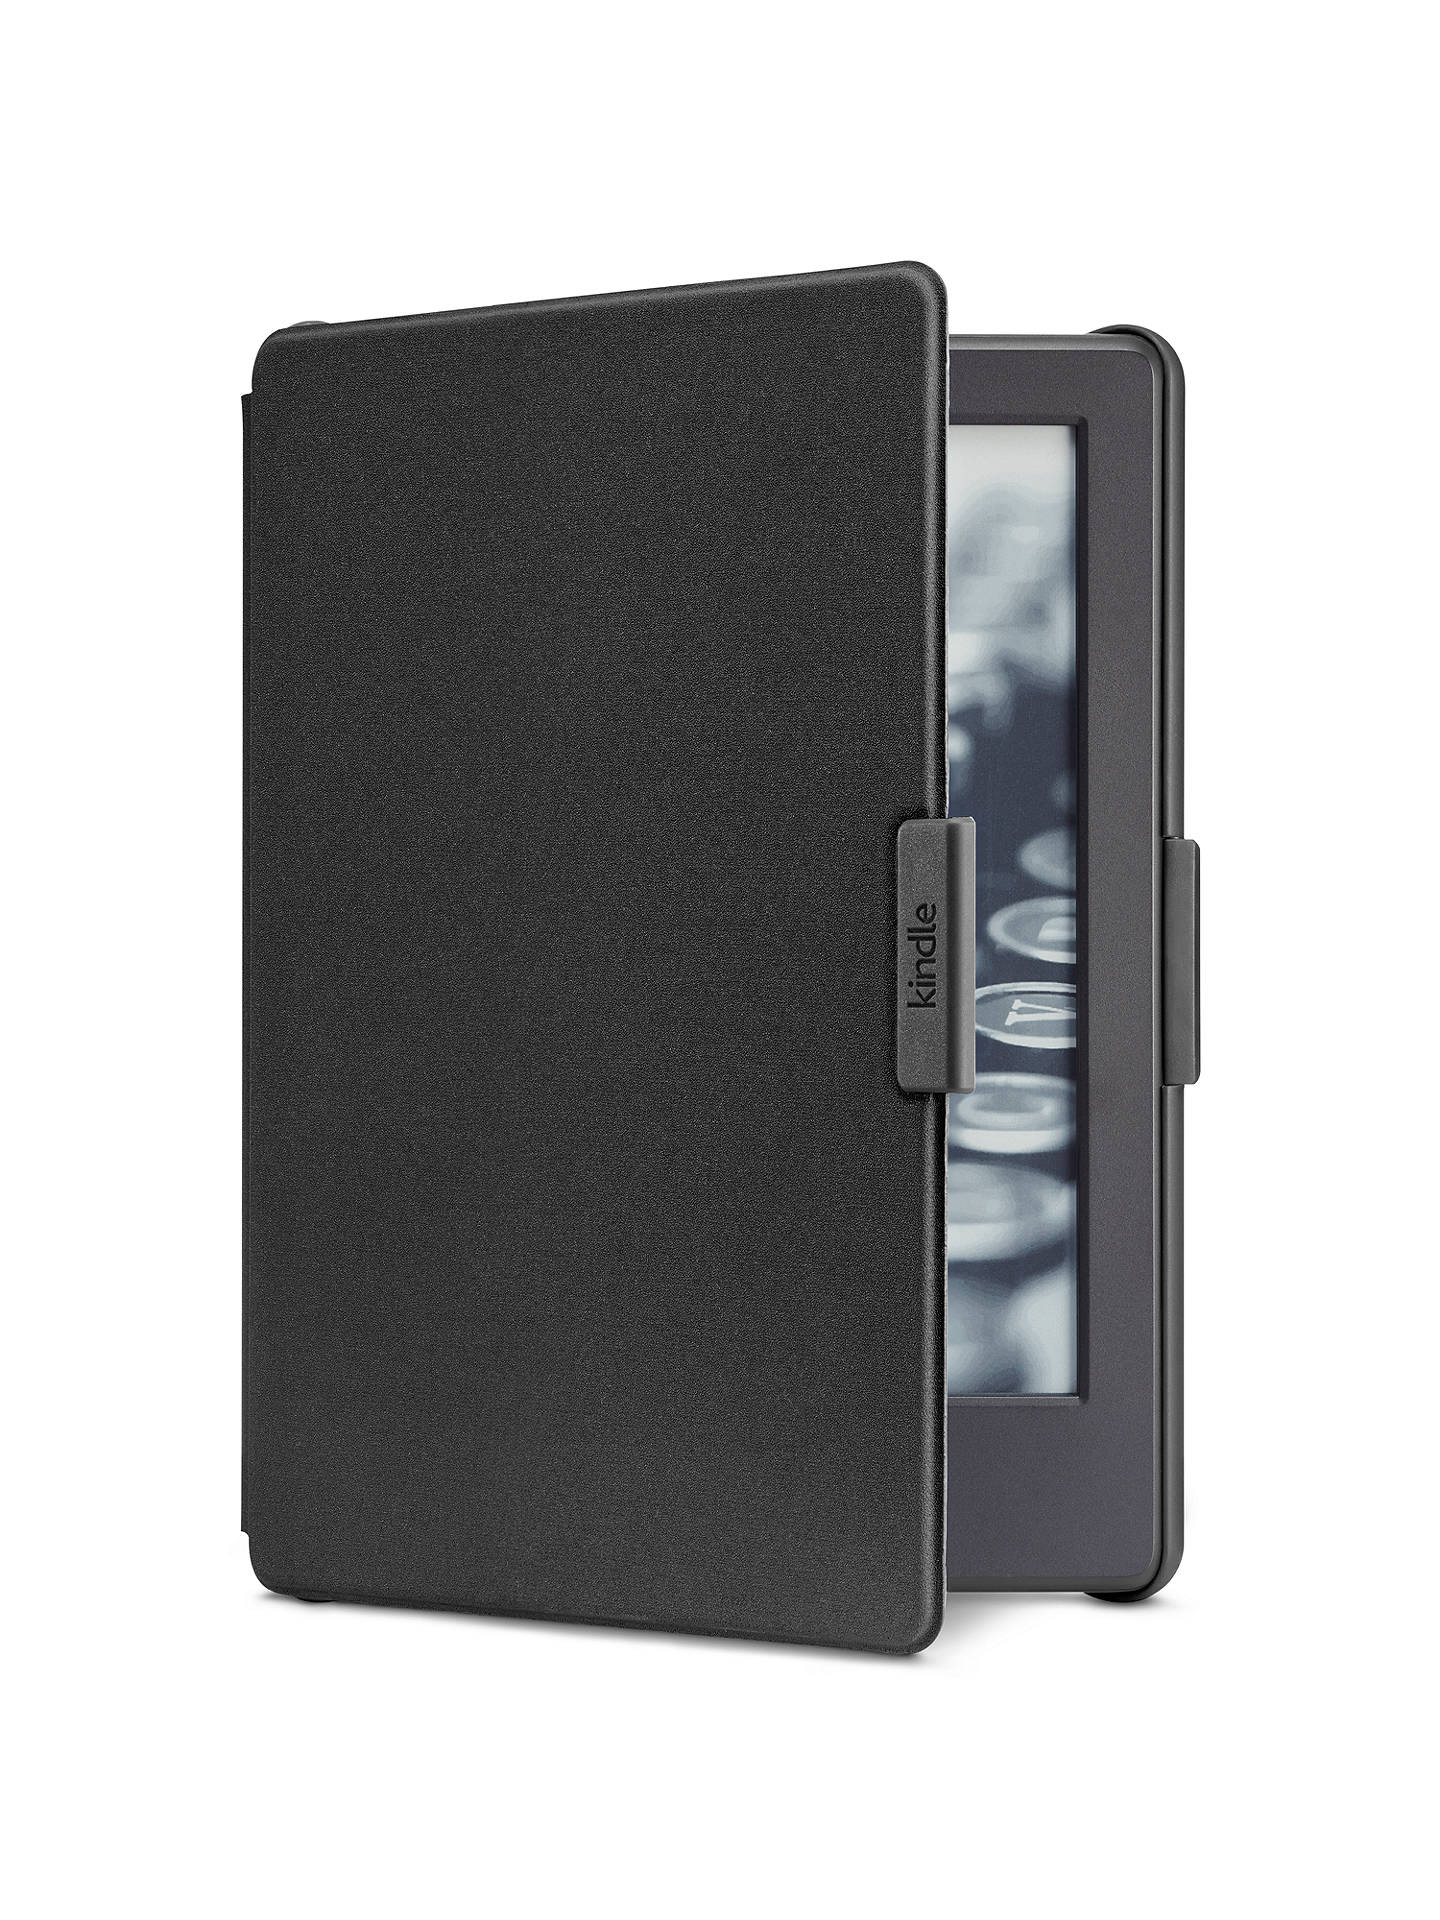 BuyAmazon Protective Cover For Kindle 8th Generation, Black Online at johnlewis.com